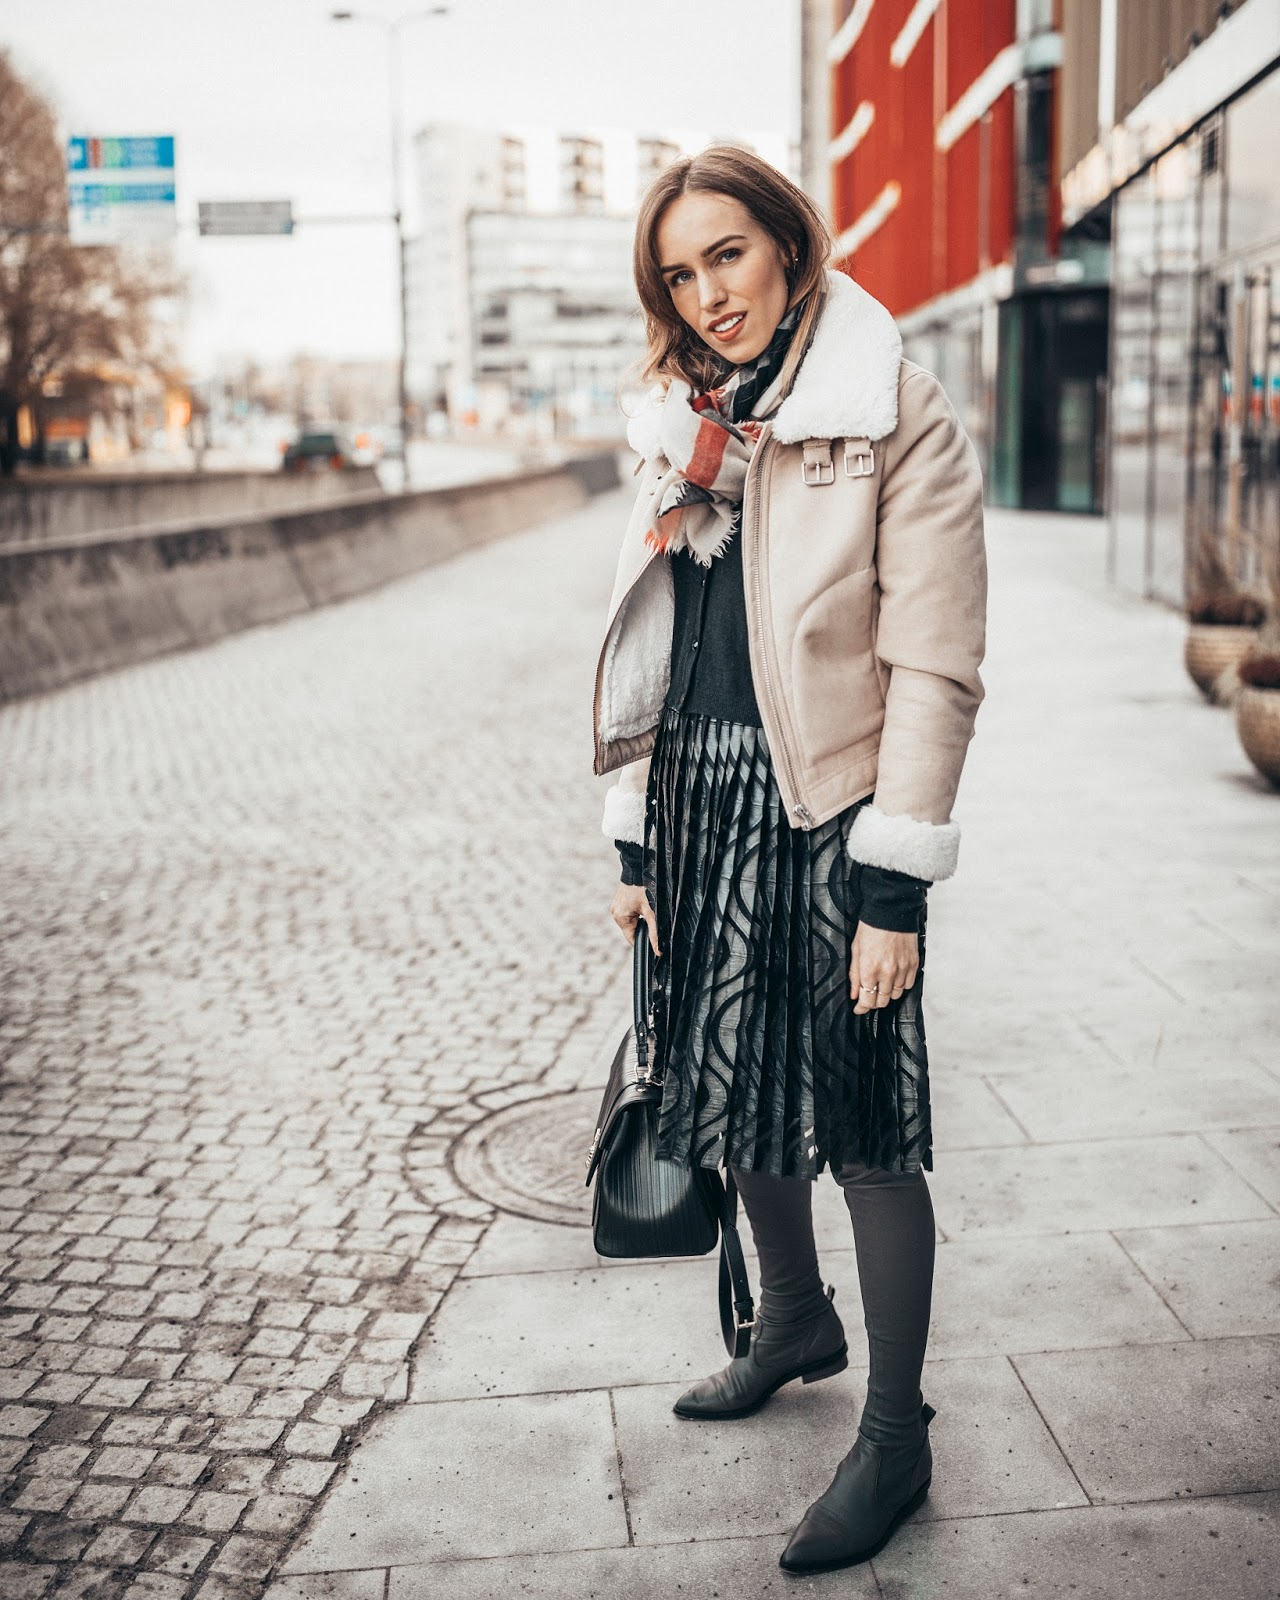 shearling jacket pleated skirt winter outfit street style